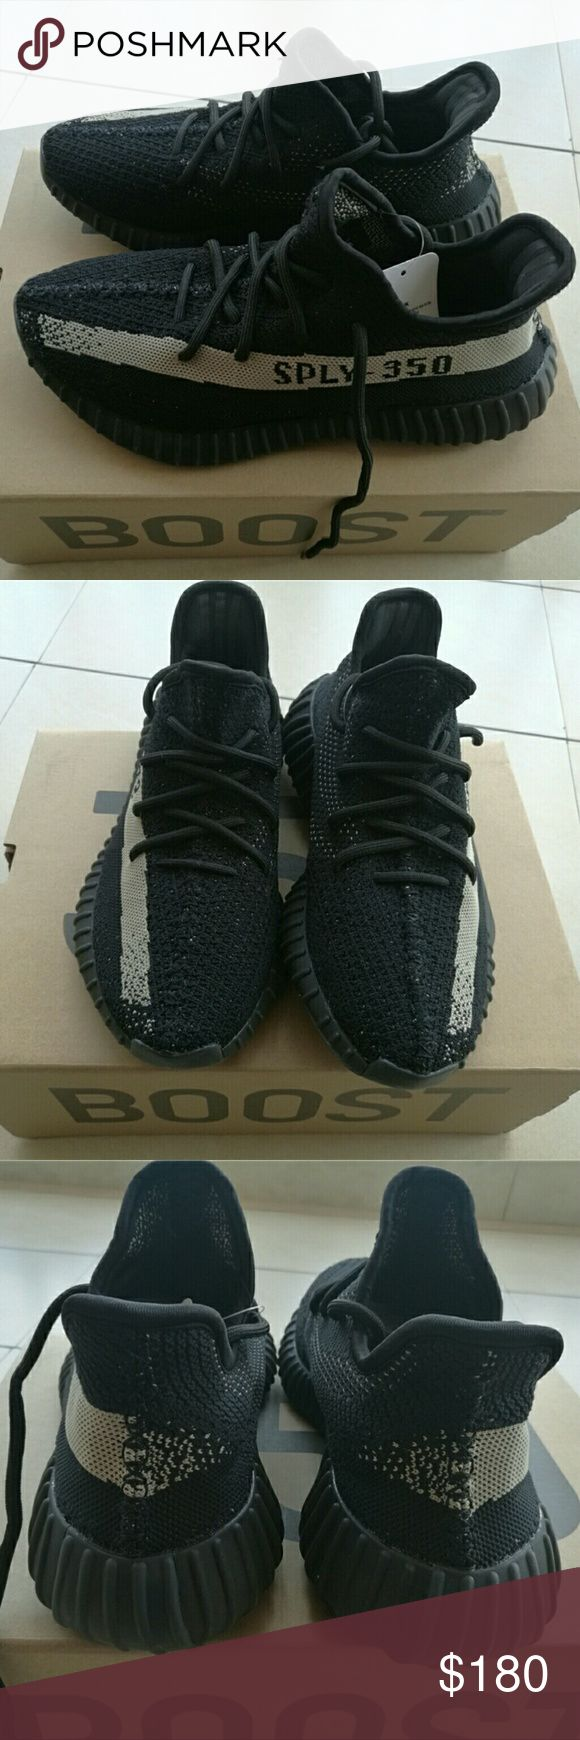 Adidas Yeezy 350 V2 Oreo With REAL BOOST Size US 4-13 available.Yeezy Shoes are authentic best retail version shoes with real boost and original box,Everything of them are the same as originals in adidas store and have highest performance cost.all are real shots, what you see is what you get. We have many customers are satisfied with the quality very much. Please contact us to get $30 off before place the order, WhatsAPP: +86 17081930391 Kik: topsneakersseller or Email…